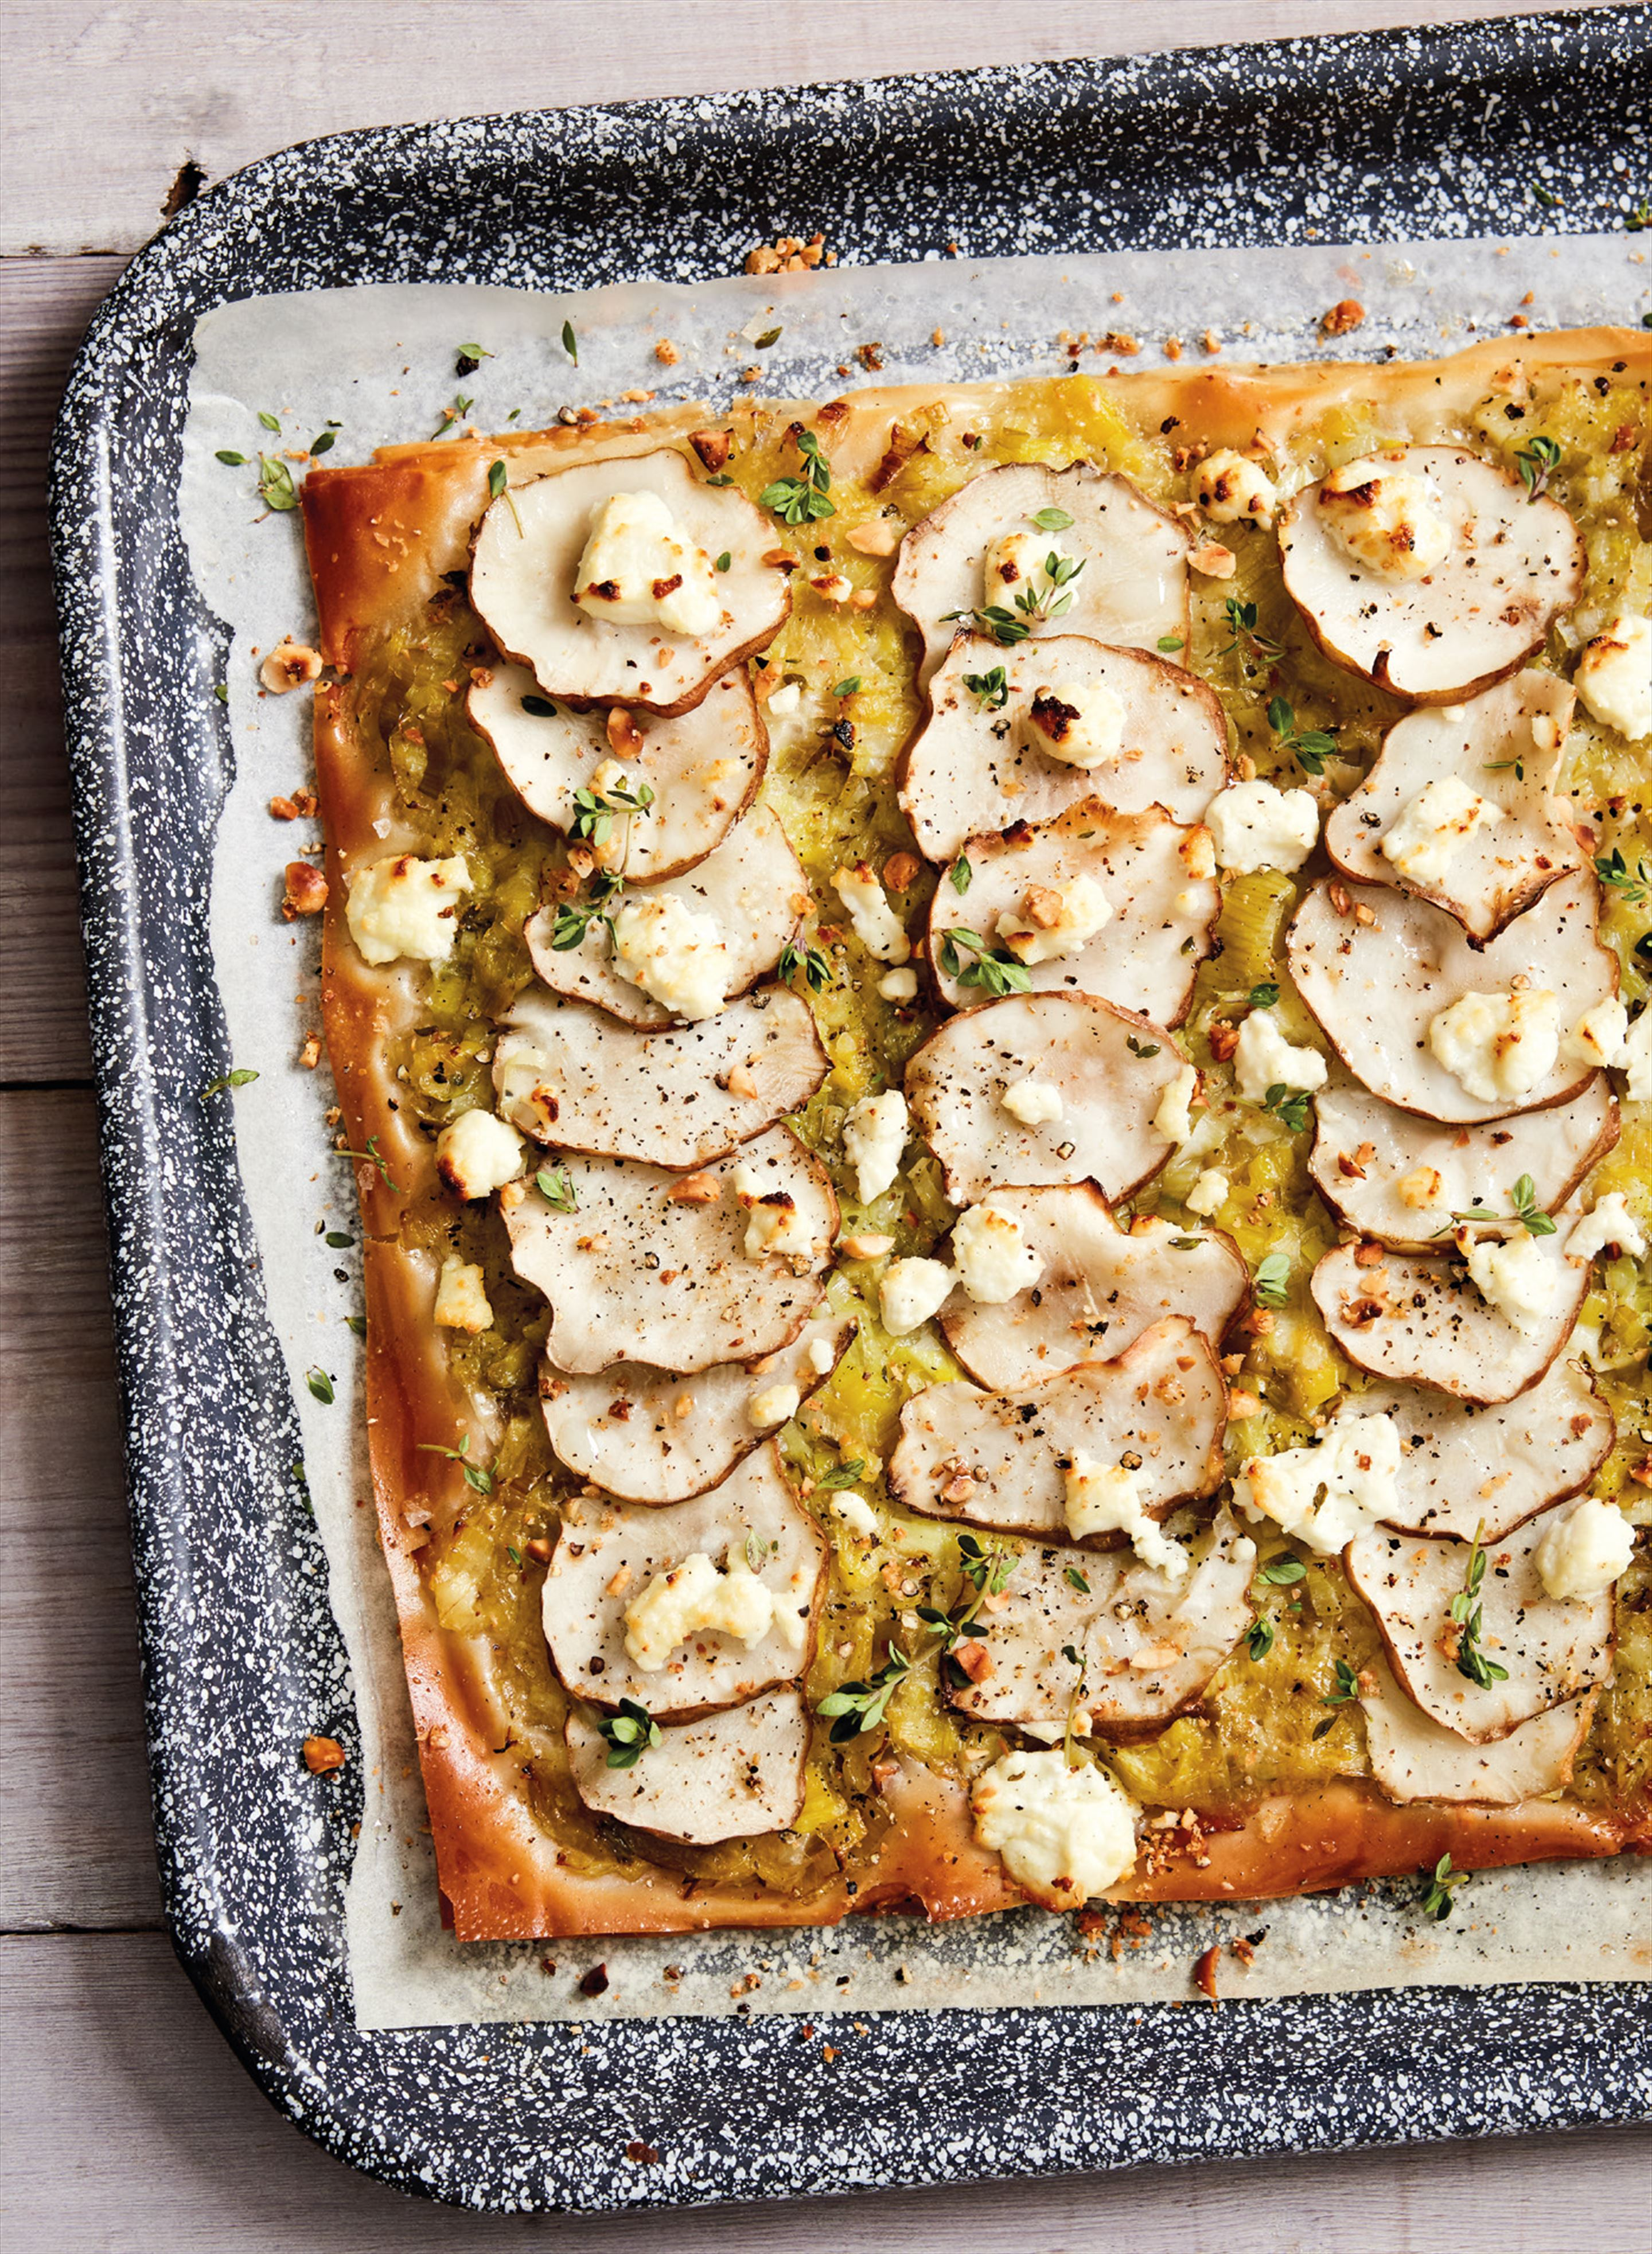 Jerusalem artichoke, hazelnut and goat's cheese tart